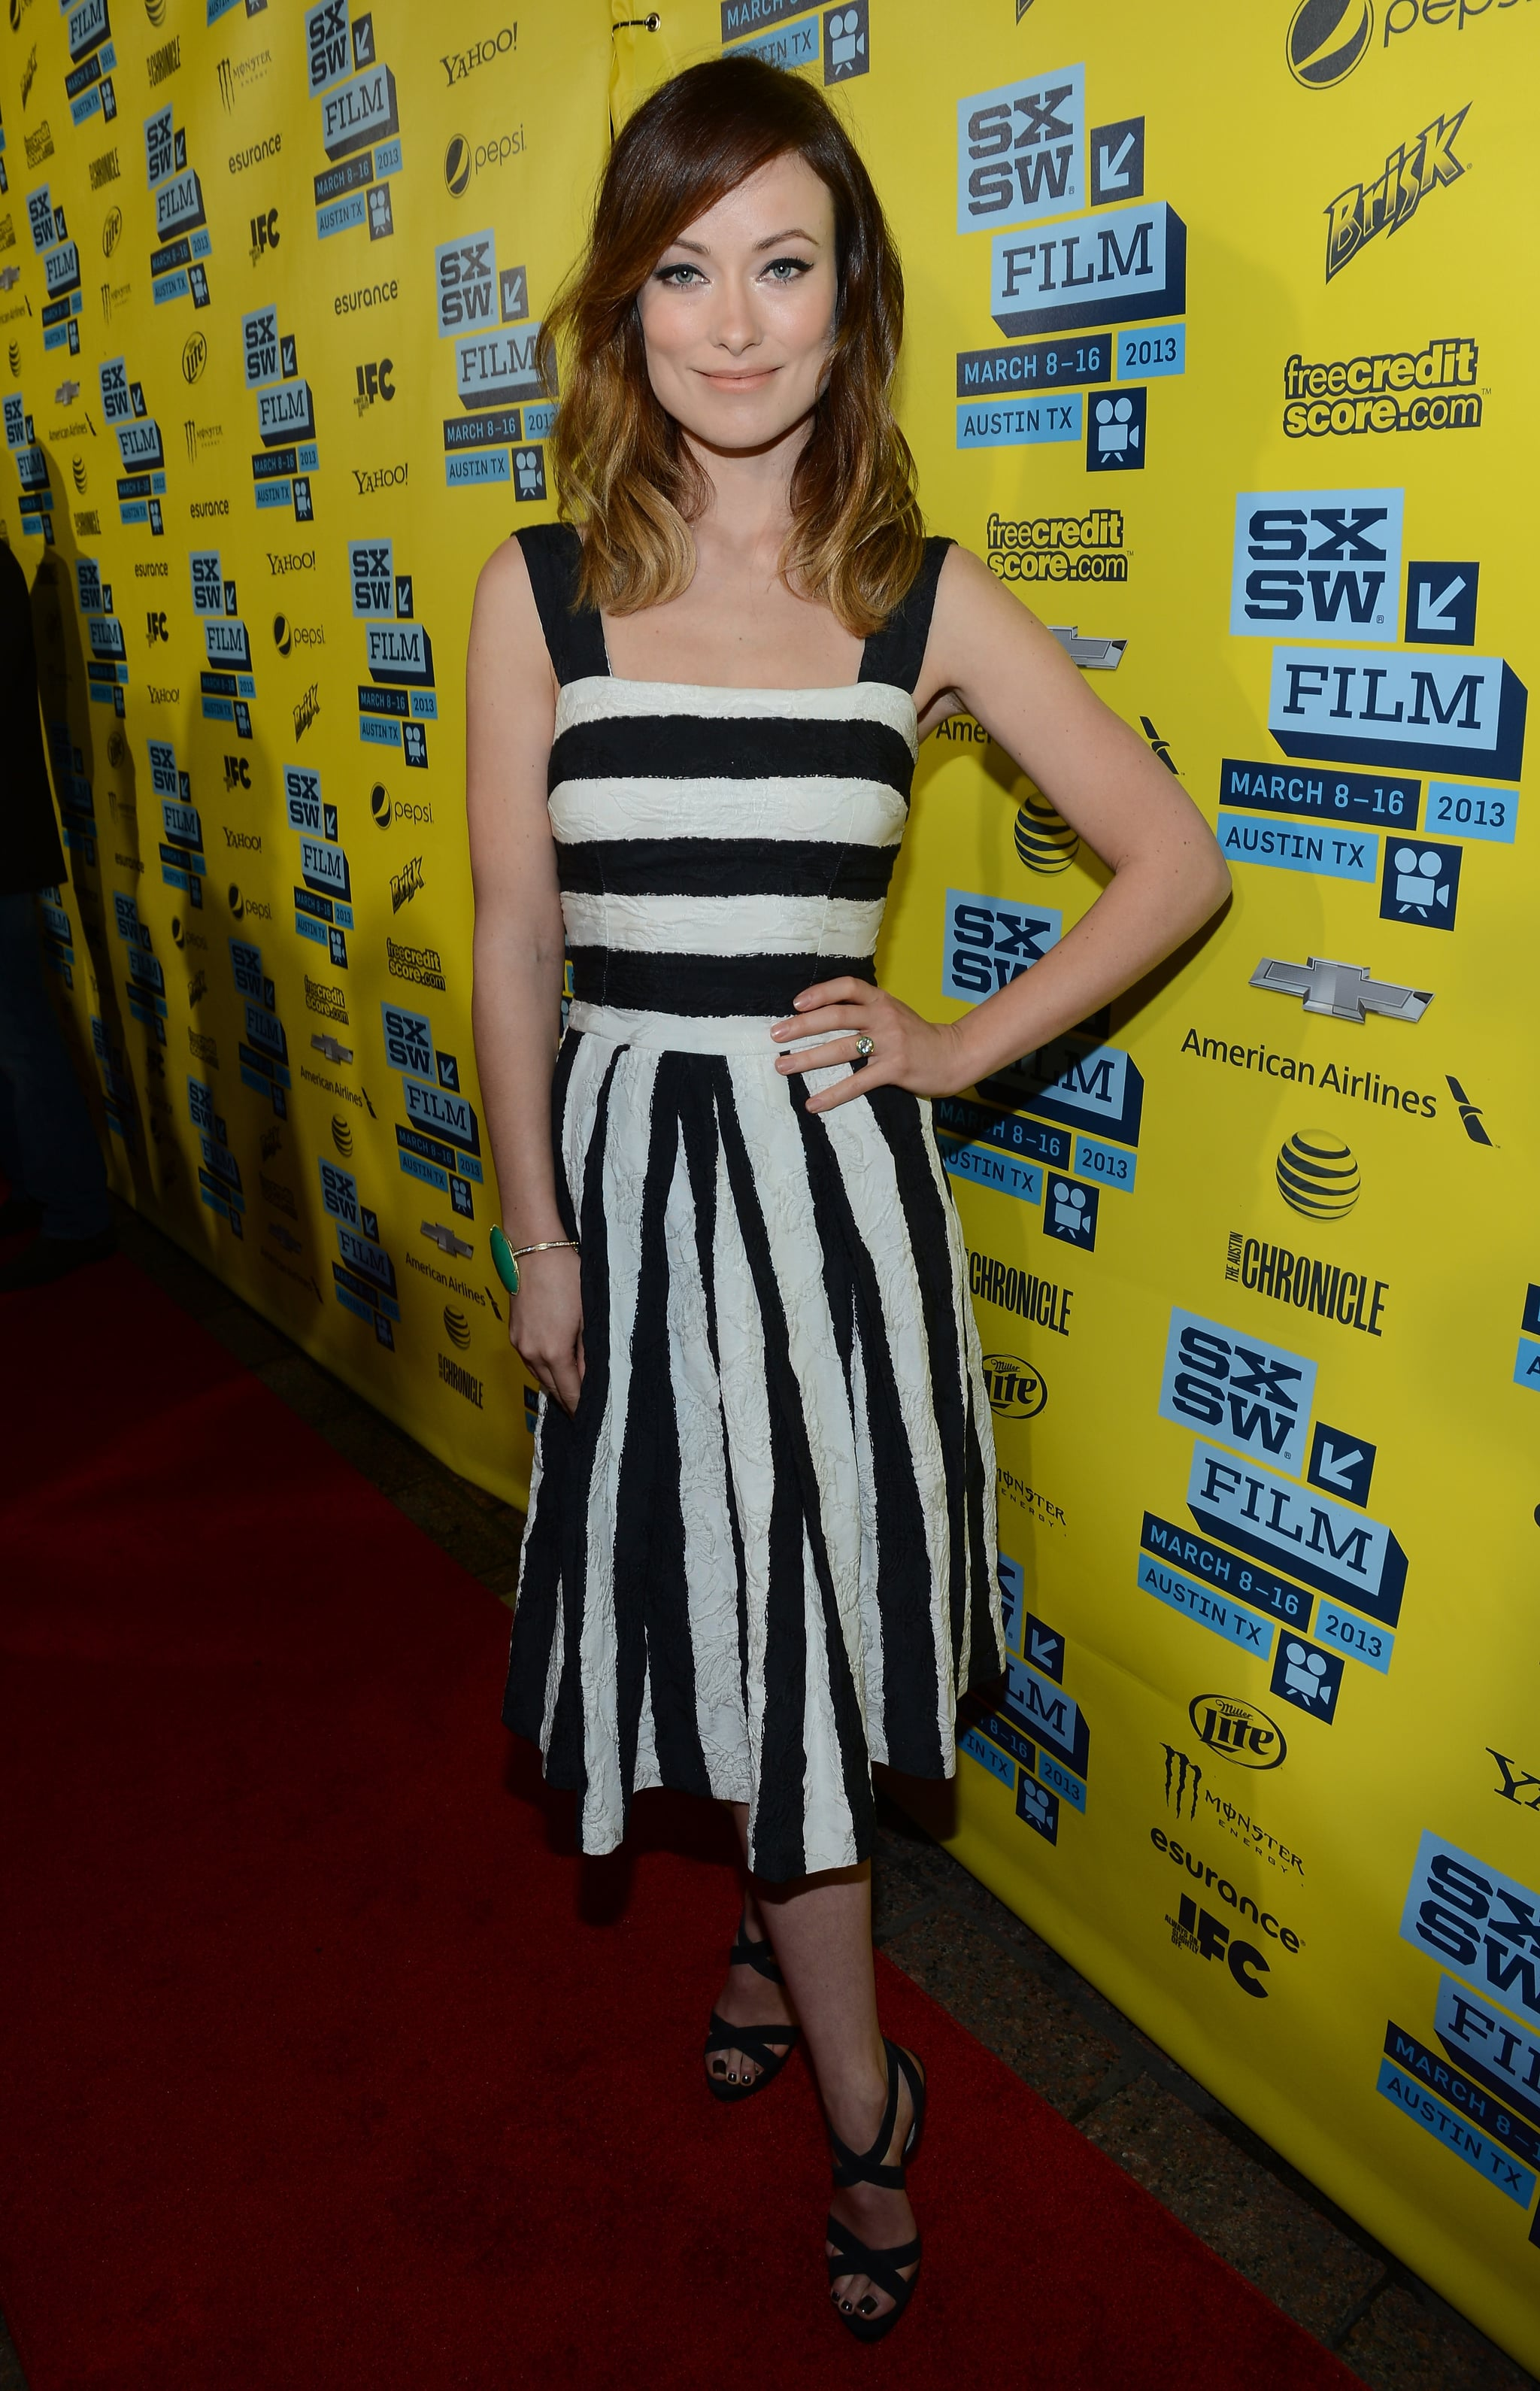 Olivia Wilde wore a striped dress for her The Incredible Burt Wonderstone premiere at SXSW.